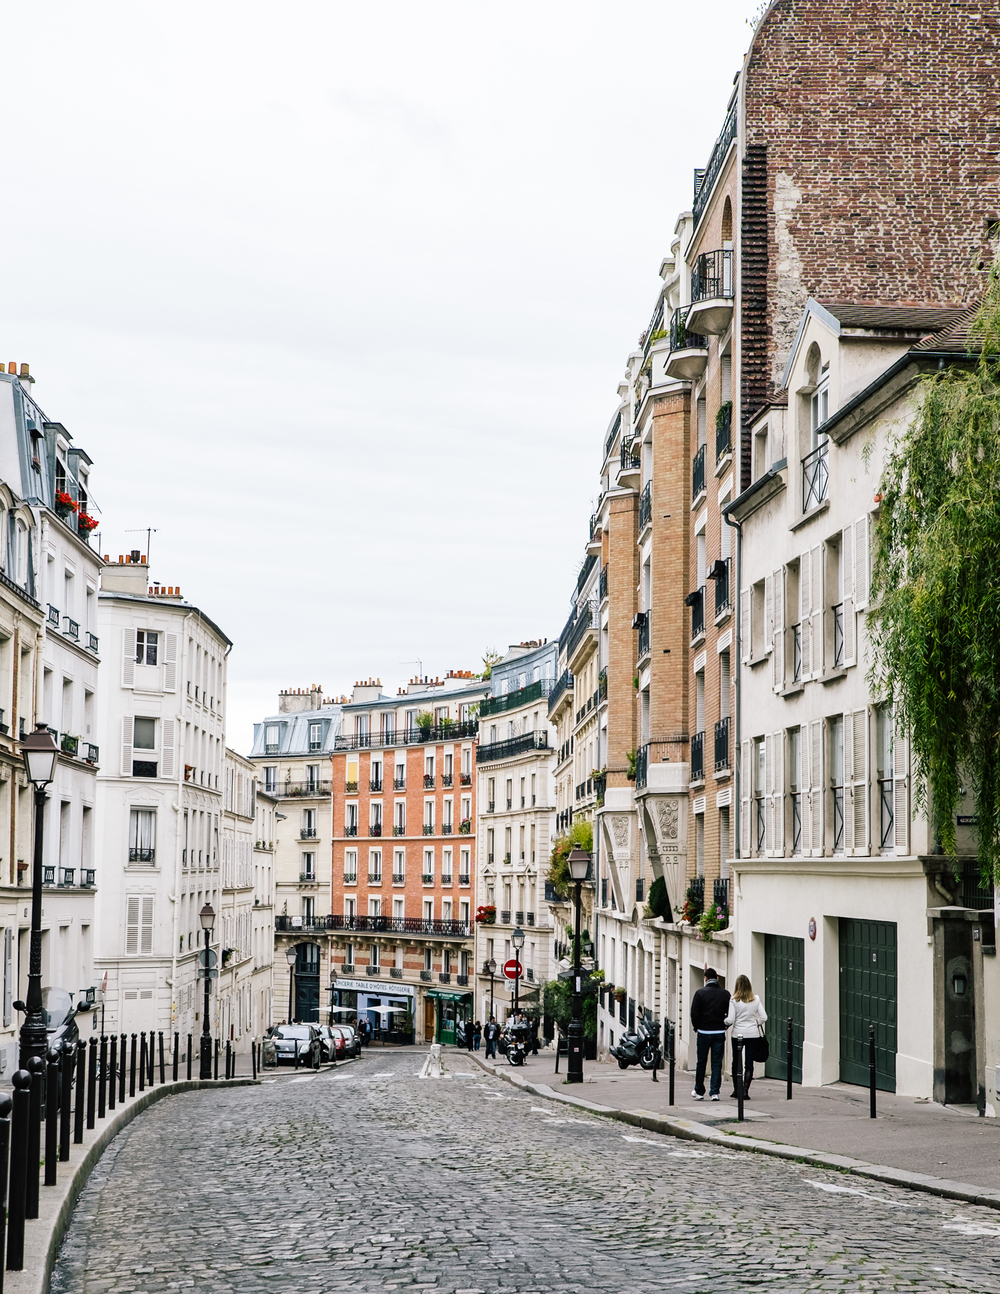 RUE LEPIC  75018   INSIDER TIP  | There's a reason people say that Montmartre feels like a village, separate from the rest of Paris. One of the best introductions to this feeling is on rue Lepic, which winds all the up toward Sacré Coeur. Take a leisurely stroll and admire the view.